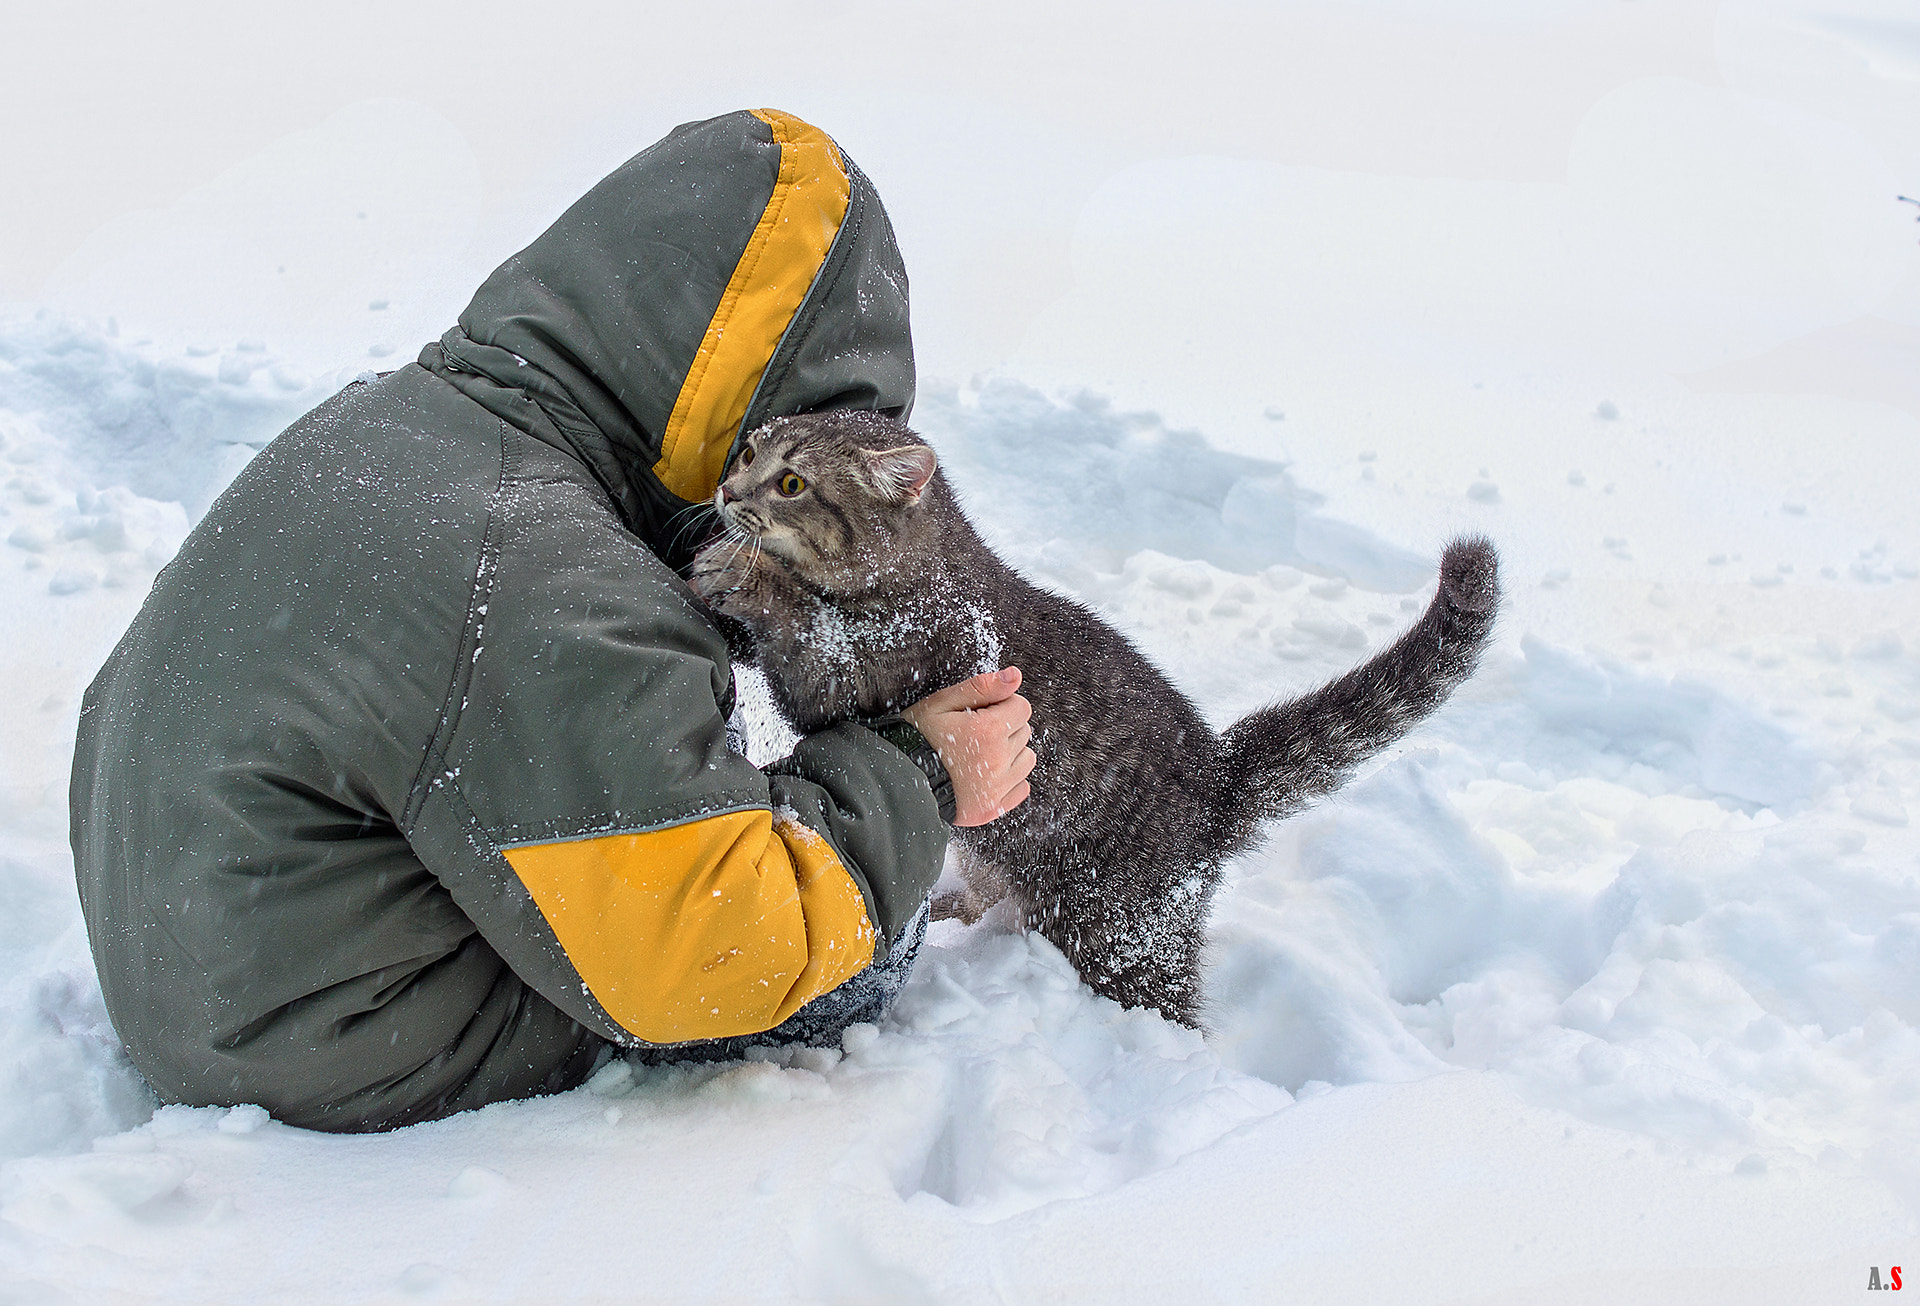 Photograph the cat learned snow for the first time! Ou!) by Alexey Stavcev on 500px